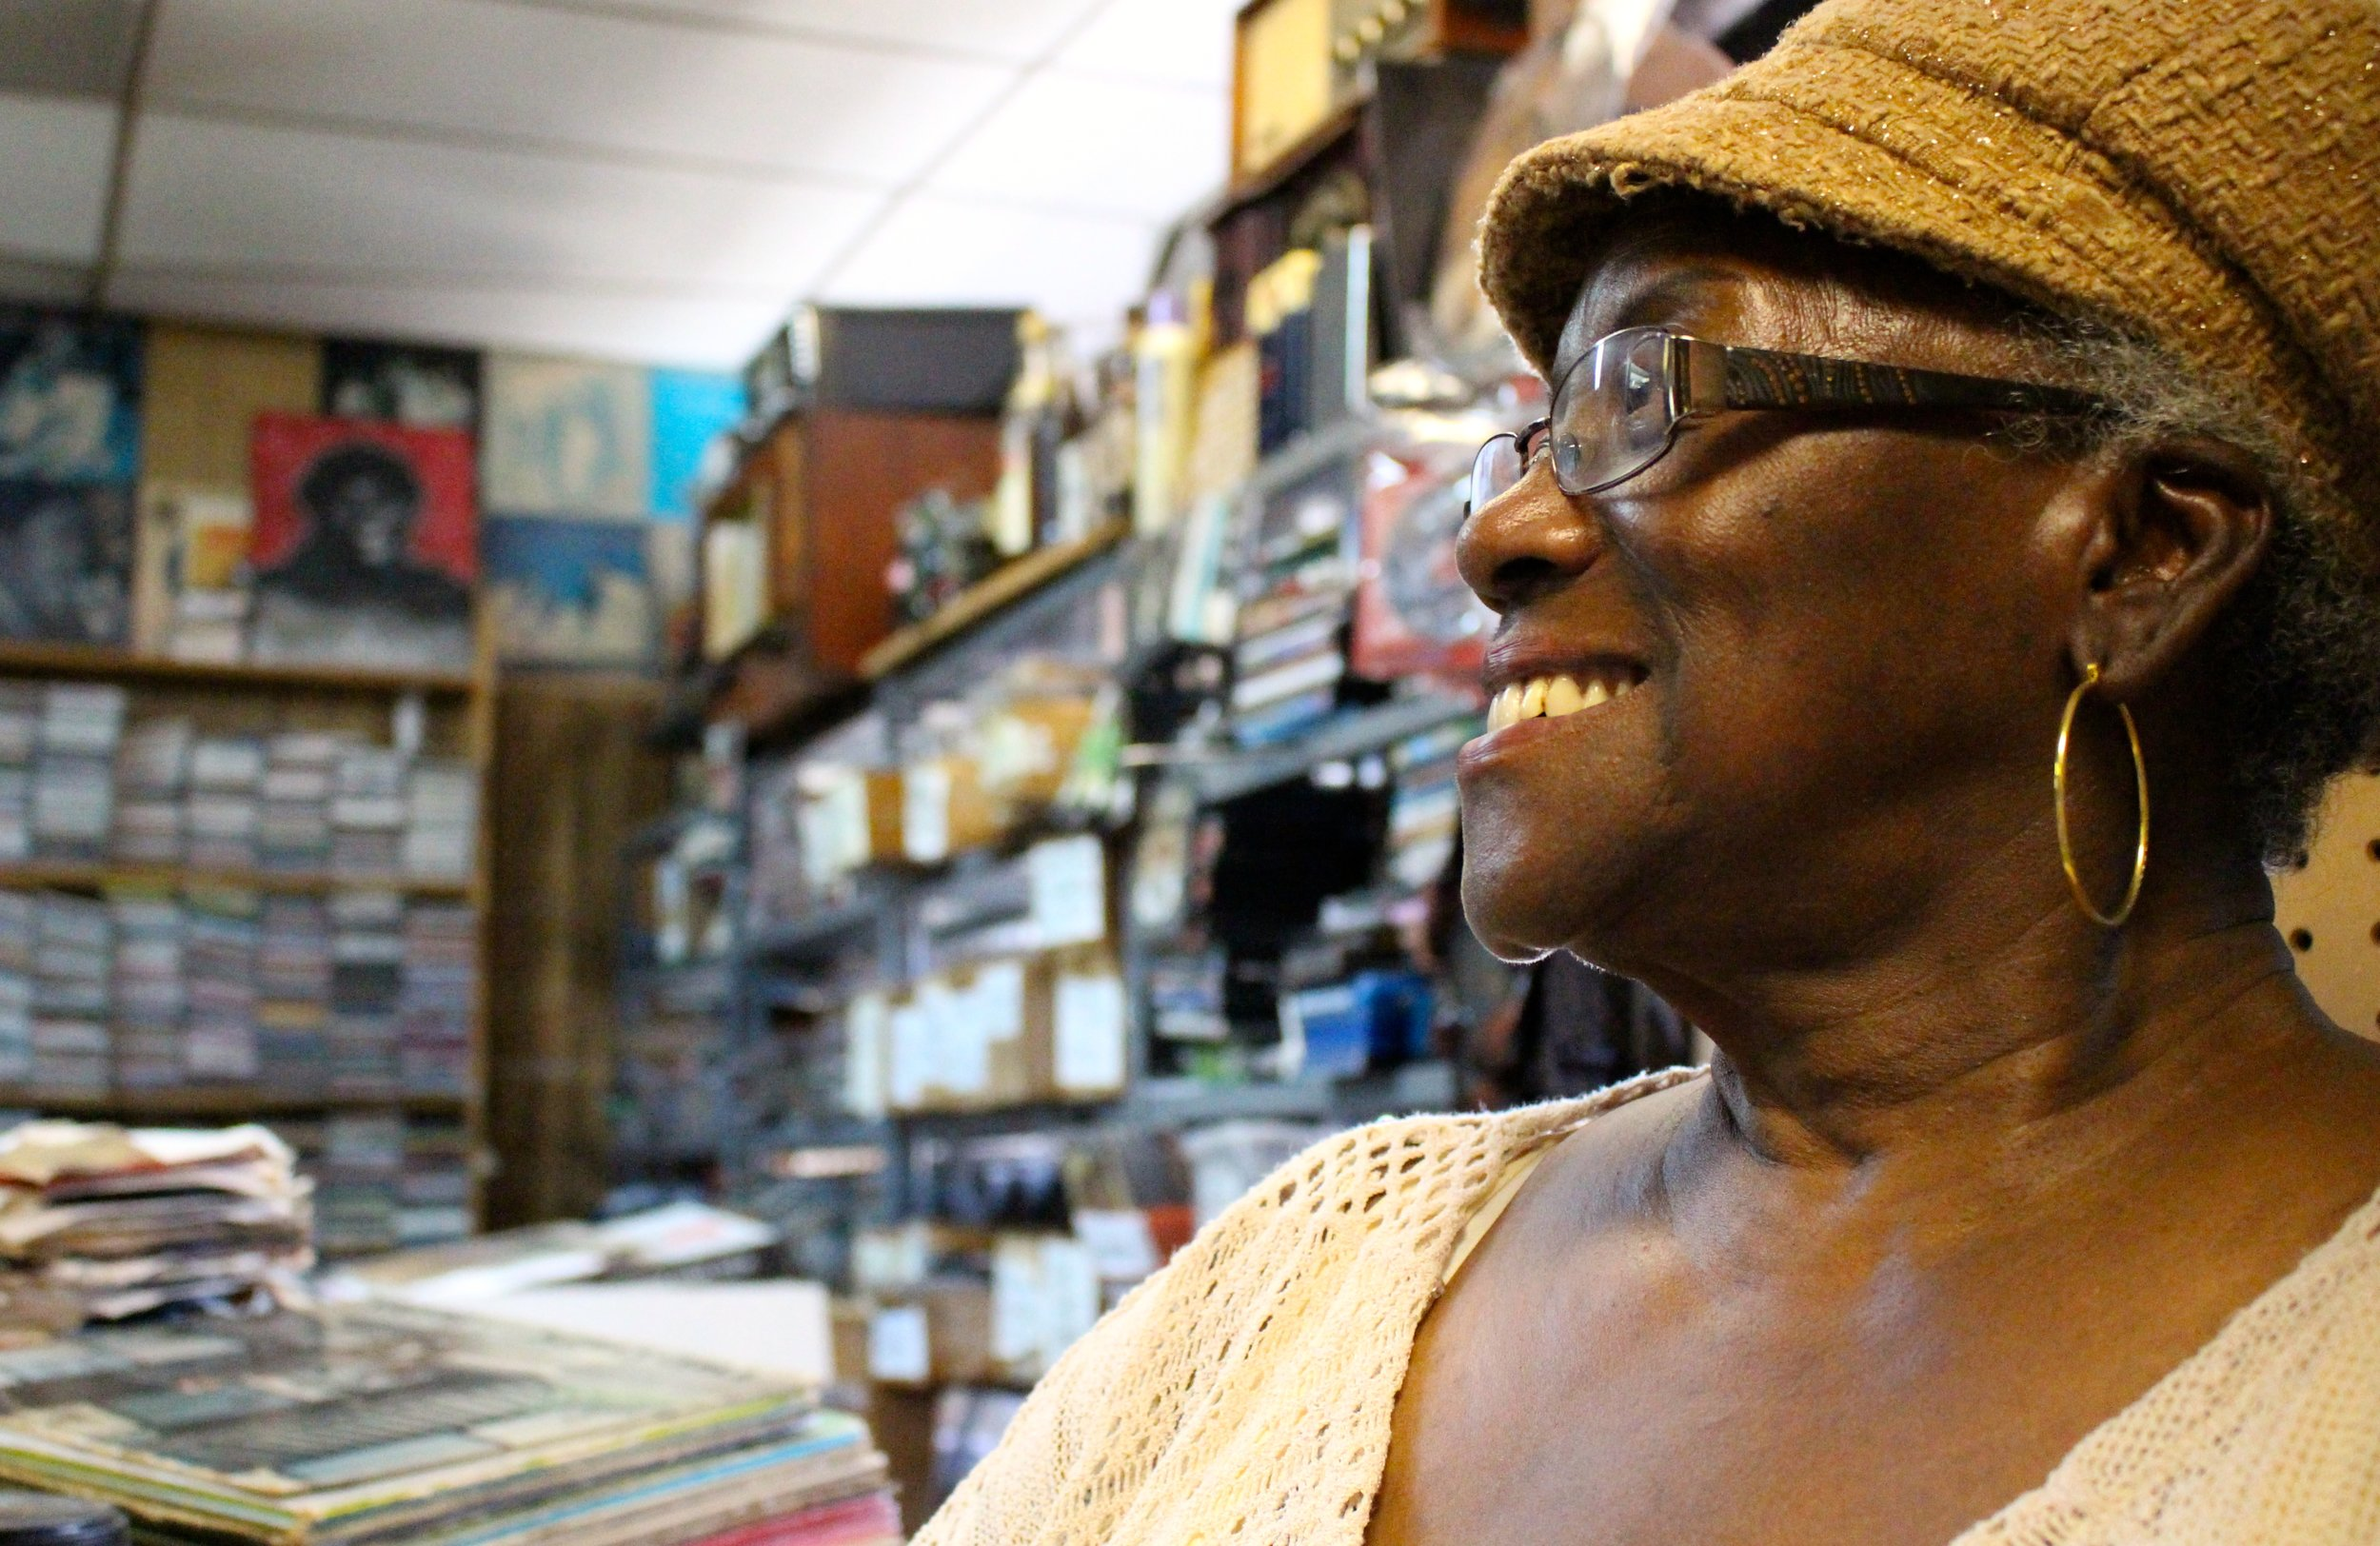 Marie Henderson, co-owner of Out of the Past Records in west side Chicago, laughs, as she thinks about her husband, Charlie Joe. The two have owned Out of the Past Records since 1986 and a thread of other businesses on West Madison Street over the years.  Photos by F. Amanda Tugade